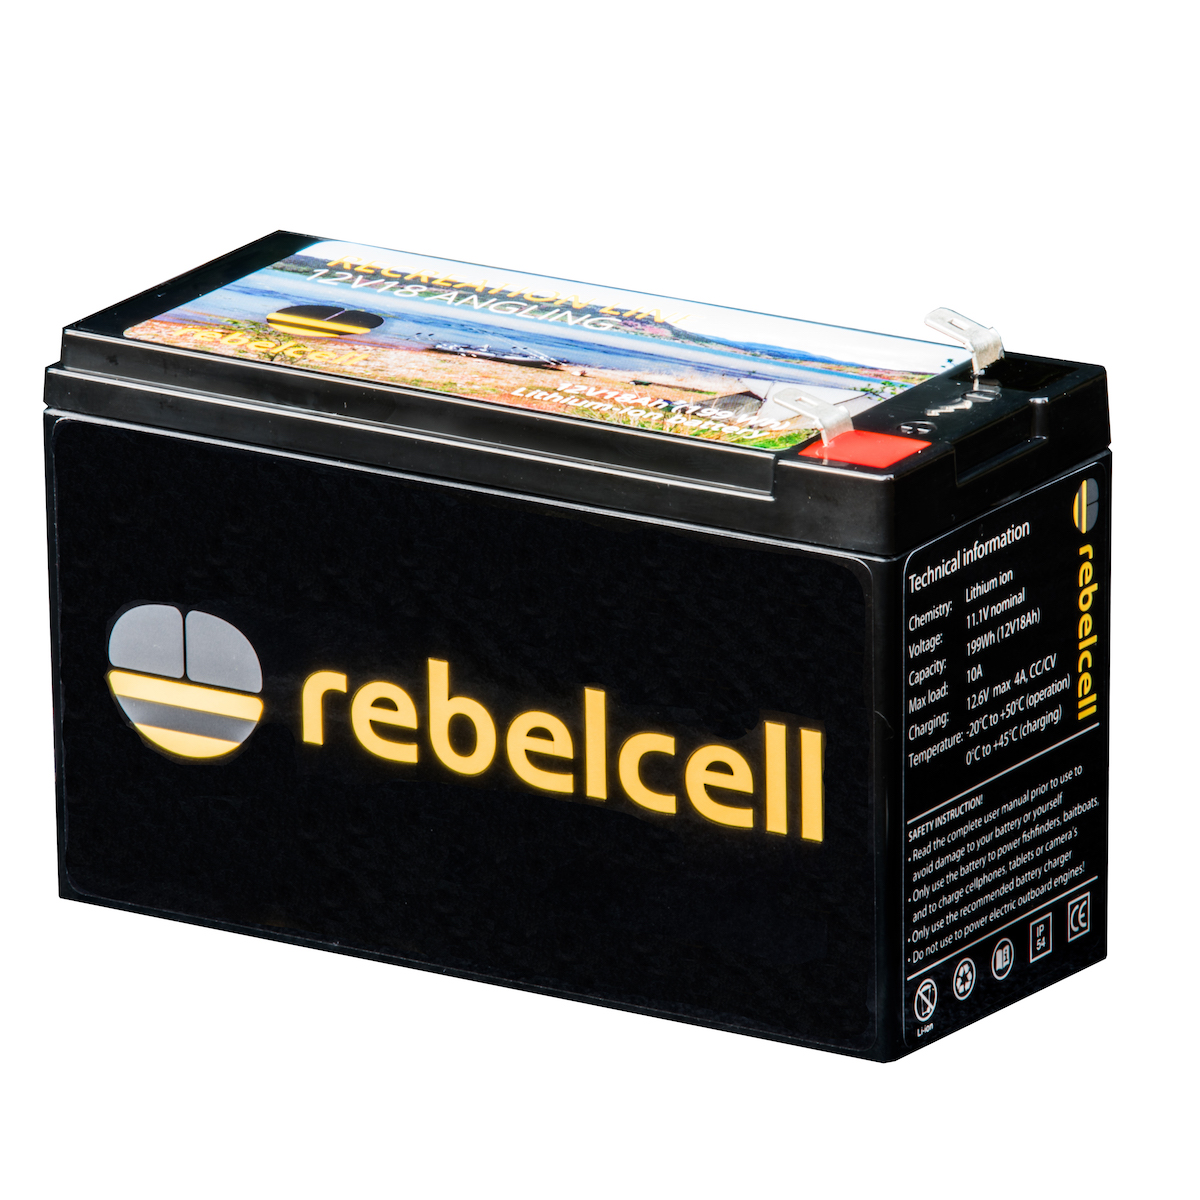 Rebelcell 12V18 Angling li-ion accu